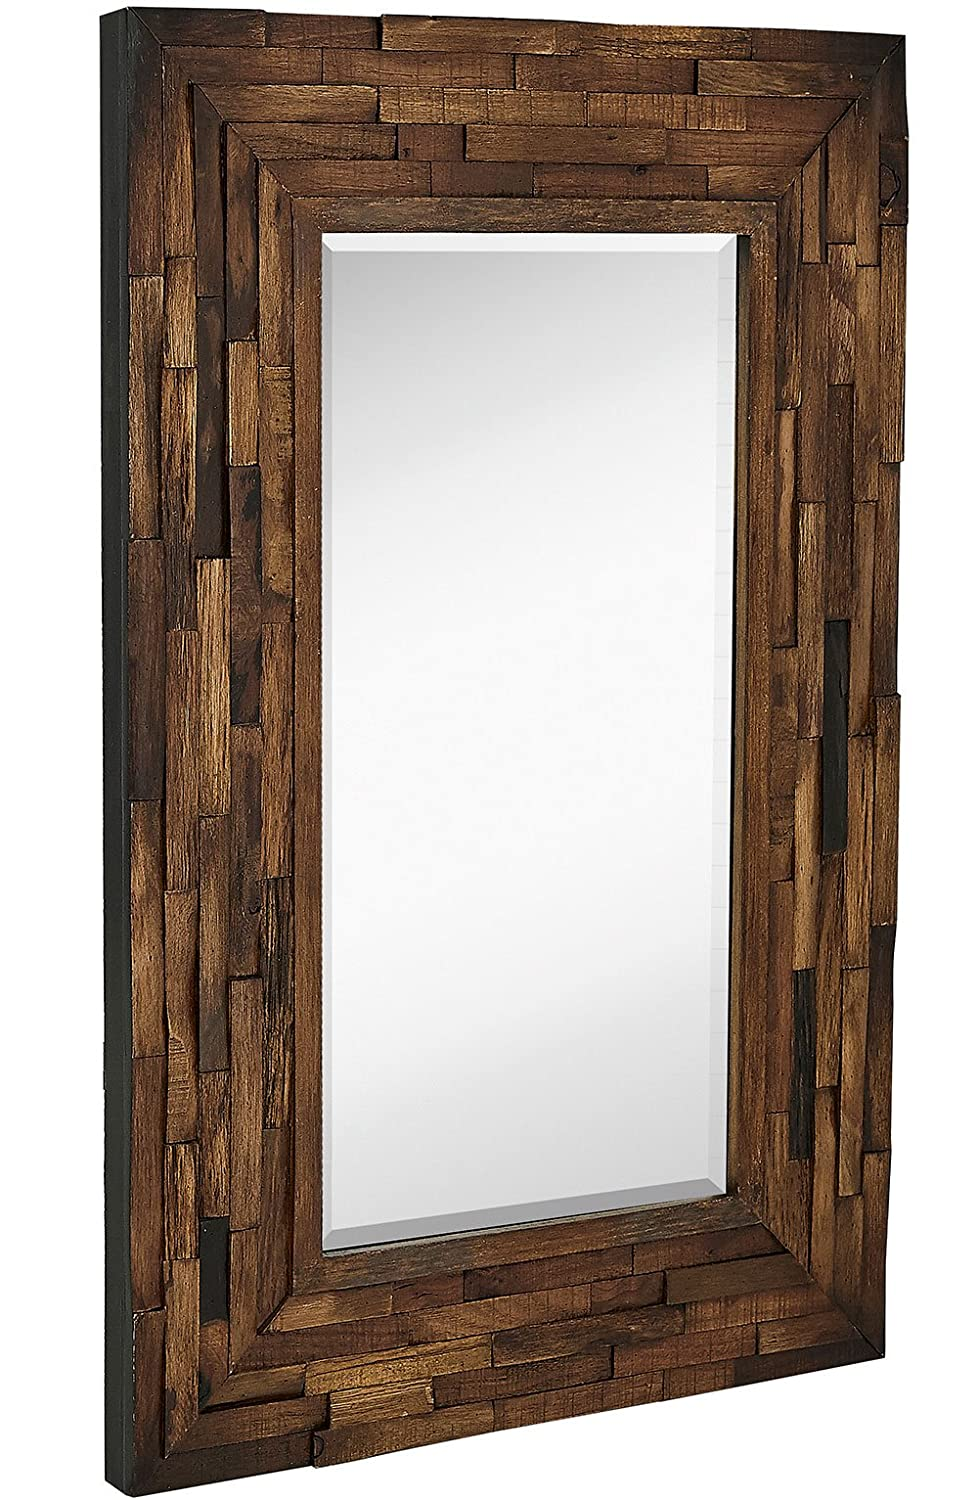 "Hamilton Hills Rustic Natural Wood Framed Wall Mirror | Solid Construction Glass Wall Mirror | Vanity, Bedroom, or Bathroom | Hangs Horizontal or Vertical | 100% (24"" x 36"")"